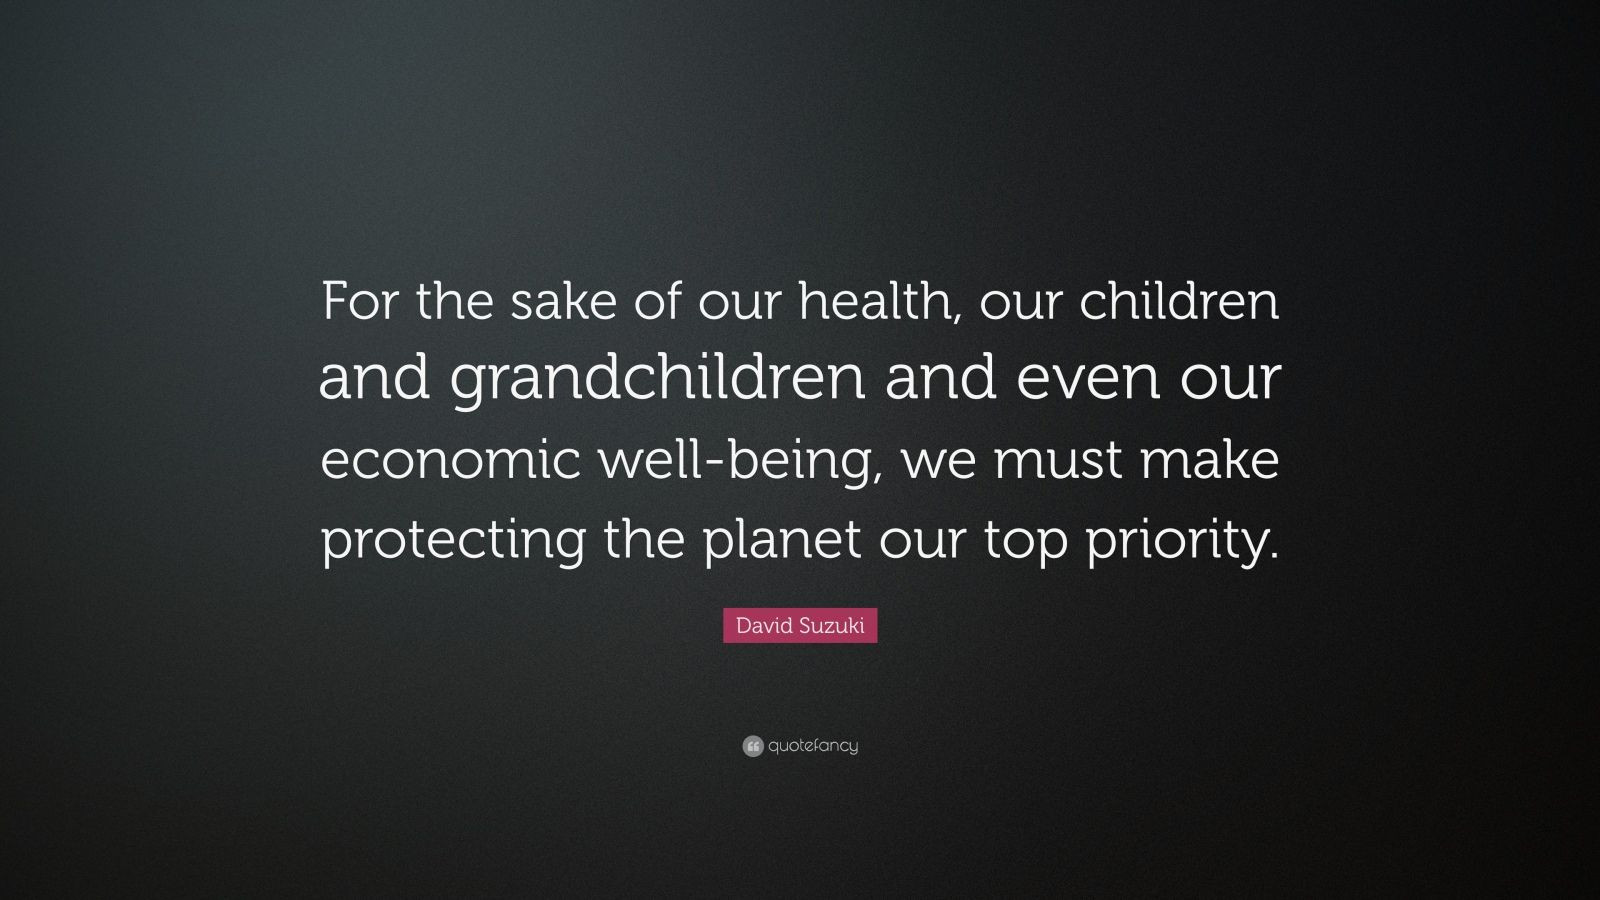 """David Suzuki Quote: """"For the sake of our health, our children and grandchildren and even our economic well-being, we must make protecting the planet our top priority."""""""